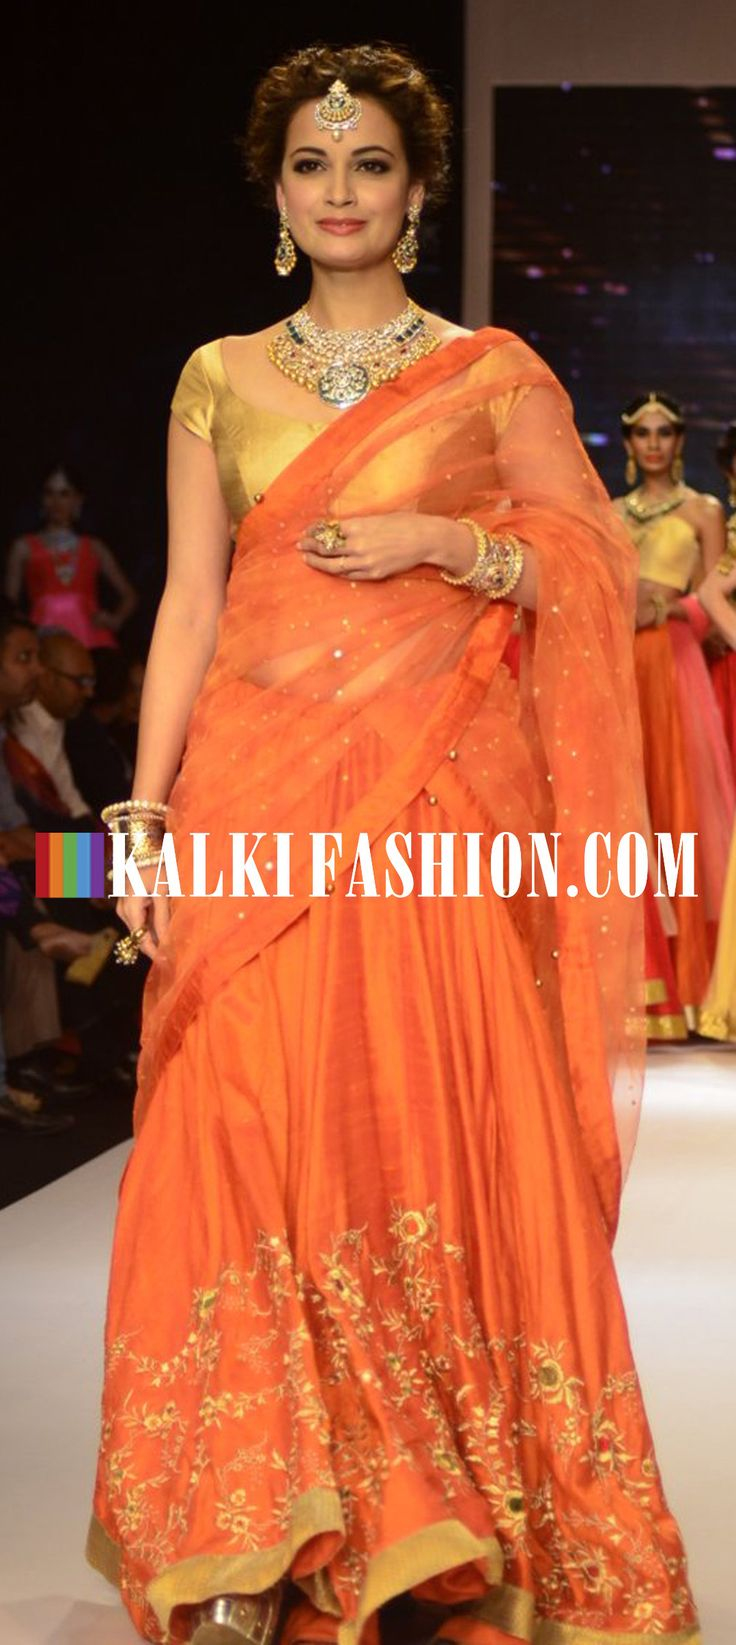 Dia Mirza walked the ramp in orange lehenga for Shobha Shringar at India International Jewellery week 2014. http://www.kalkifashion.com/